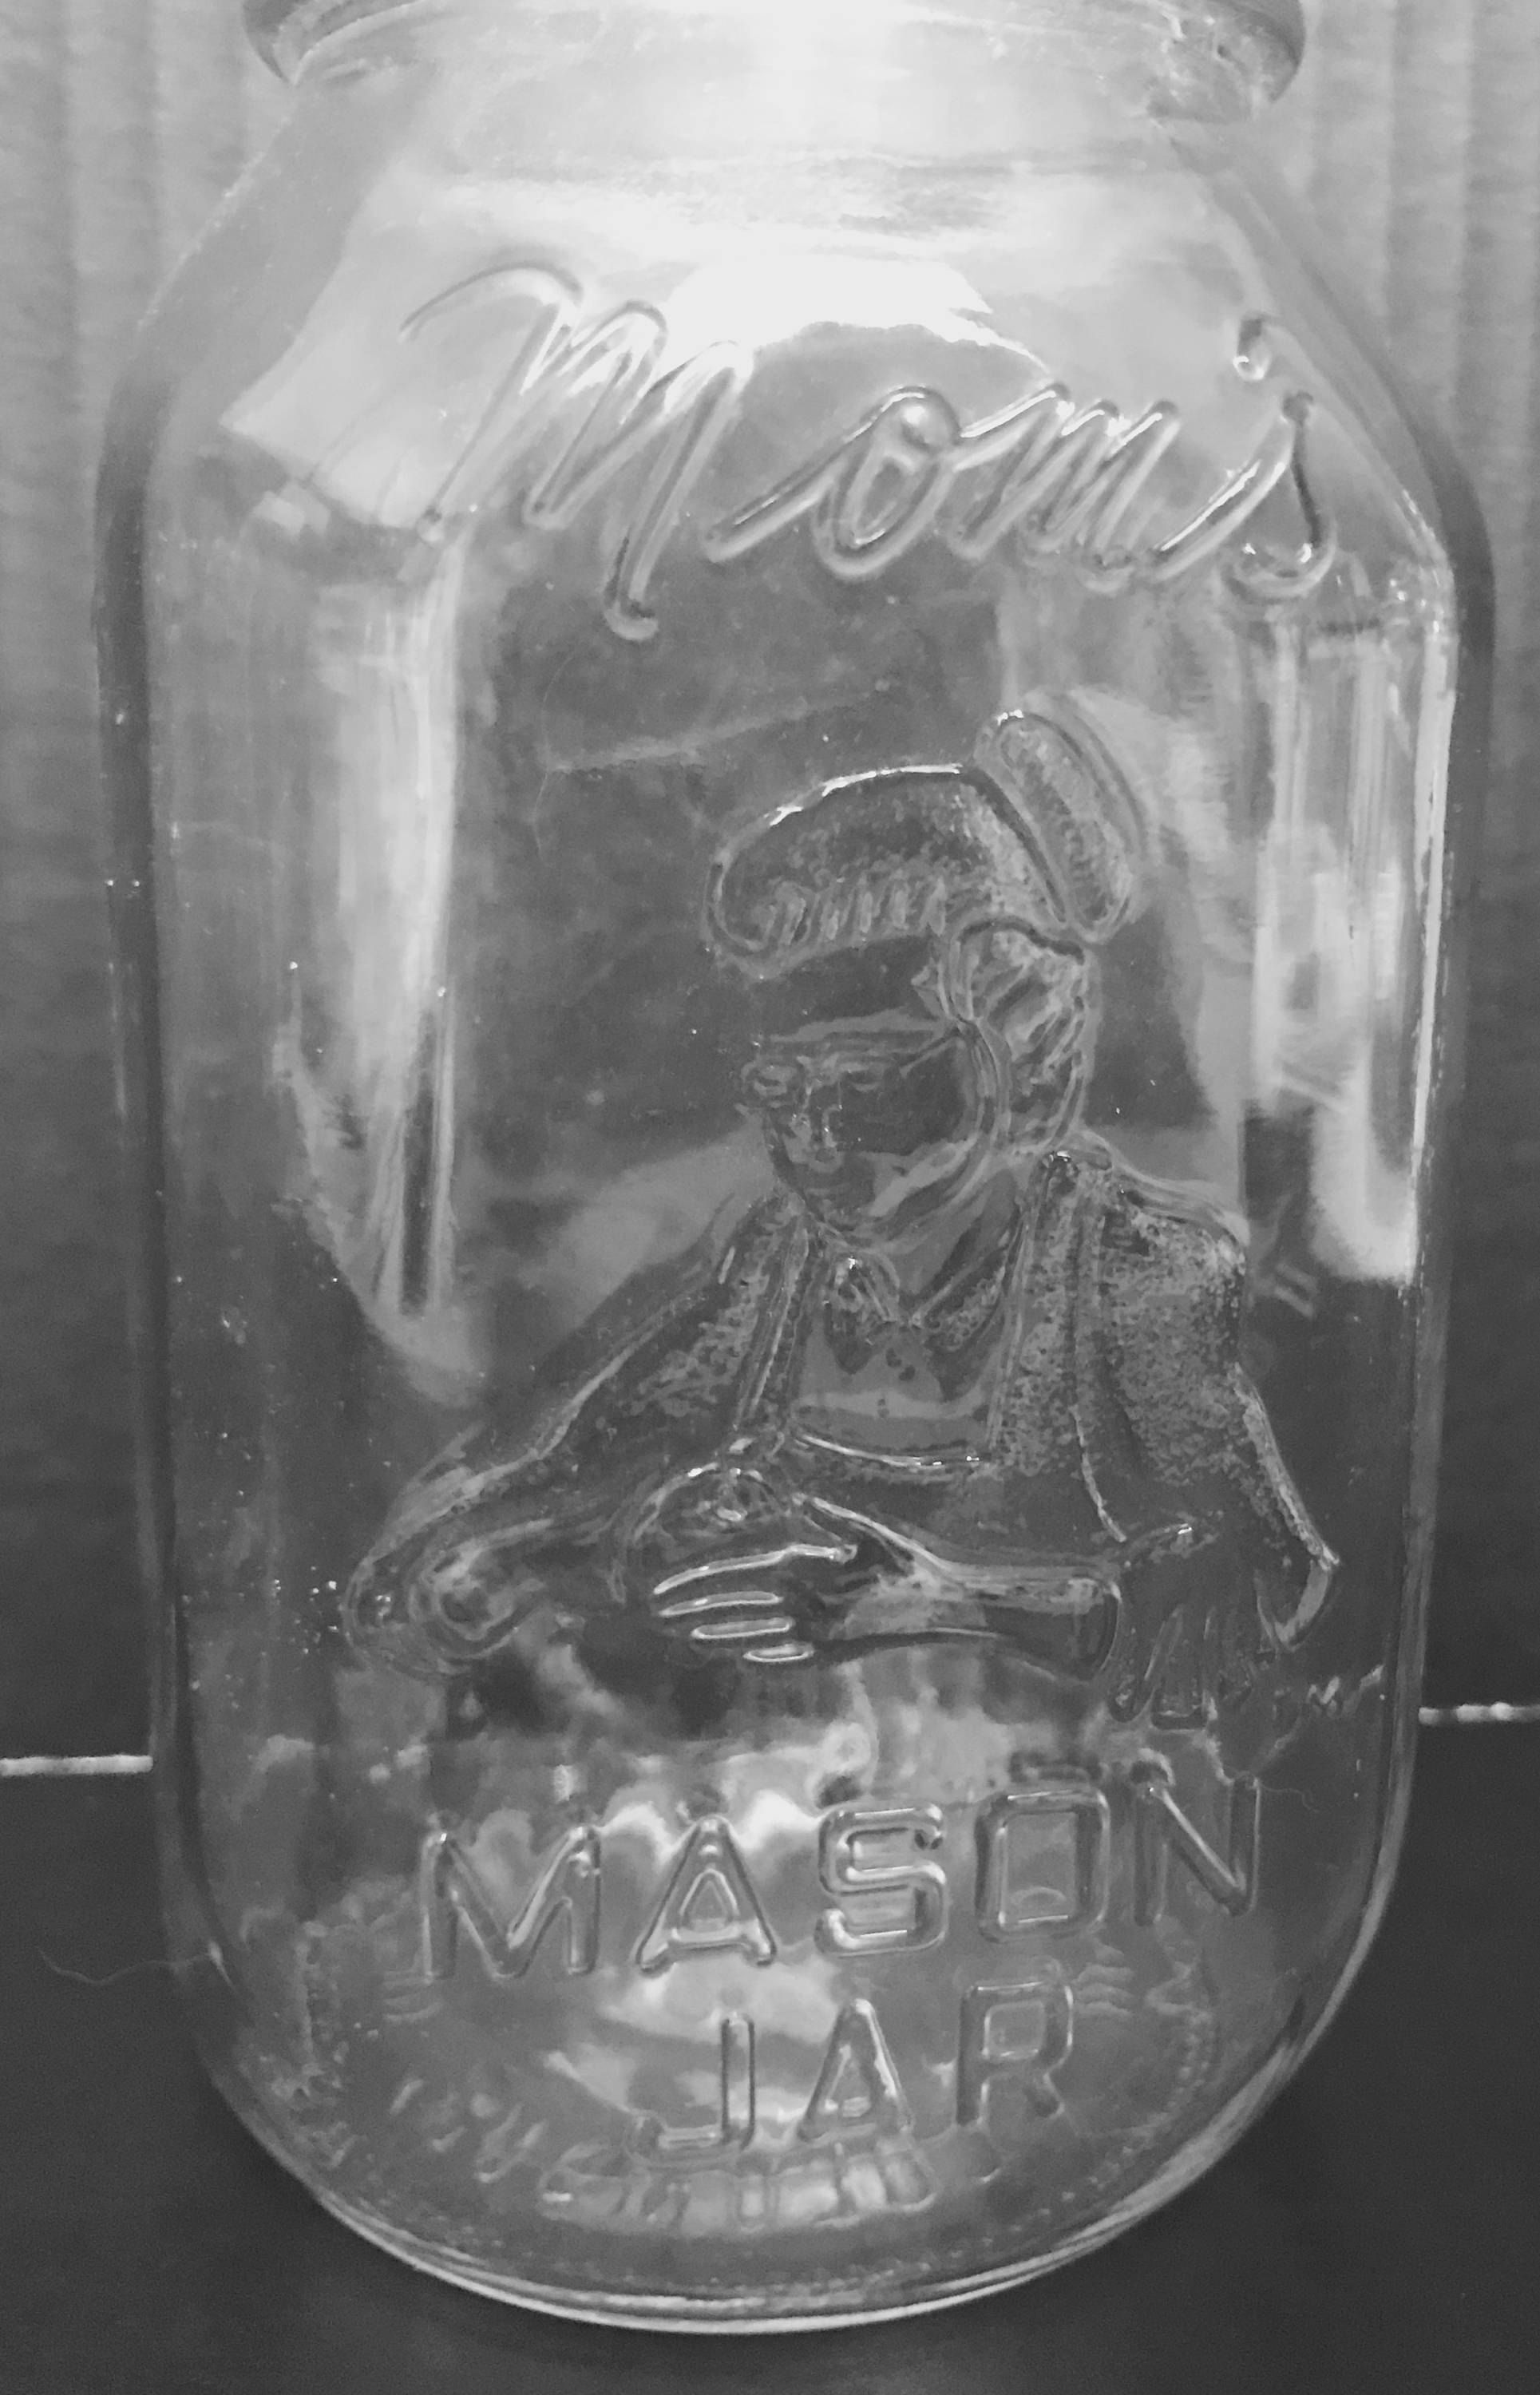 Vintage Mom's Mason Jar with an Old Lady, Mason Jar has on